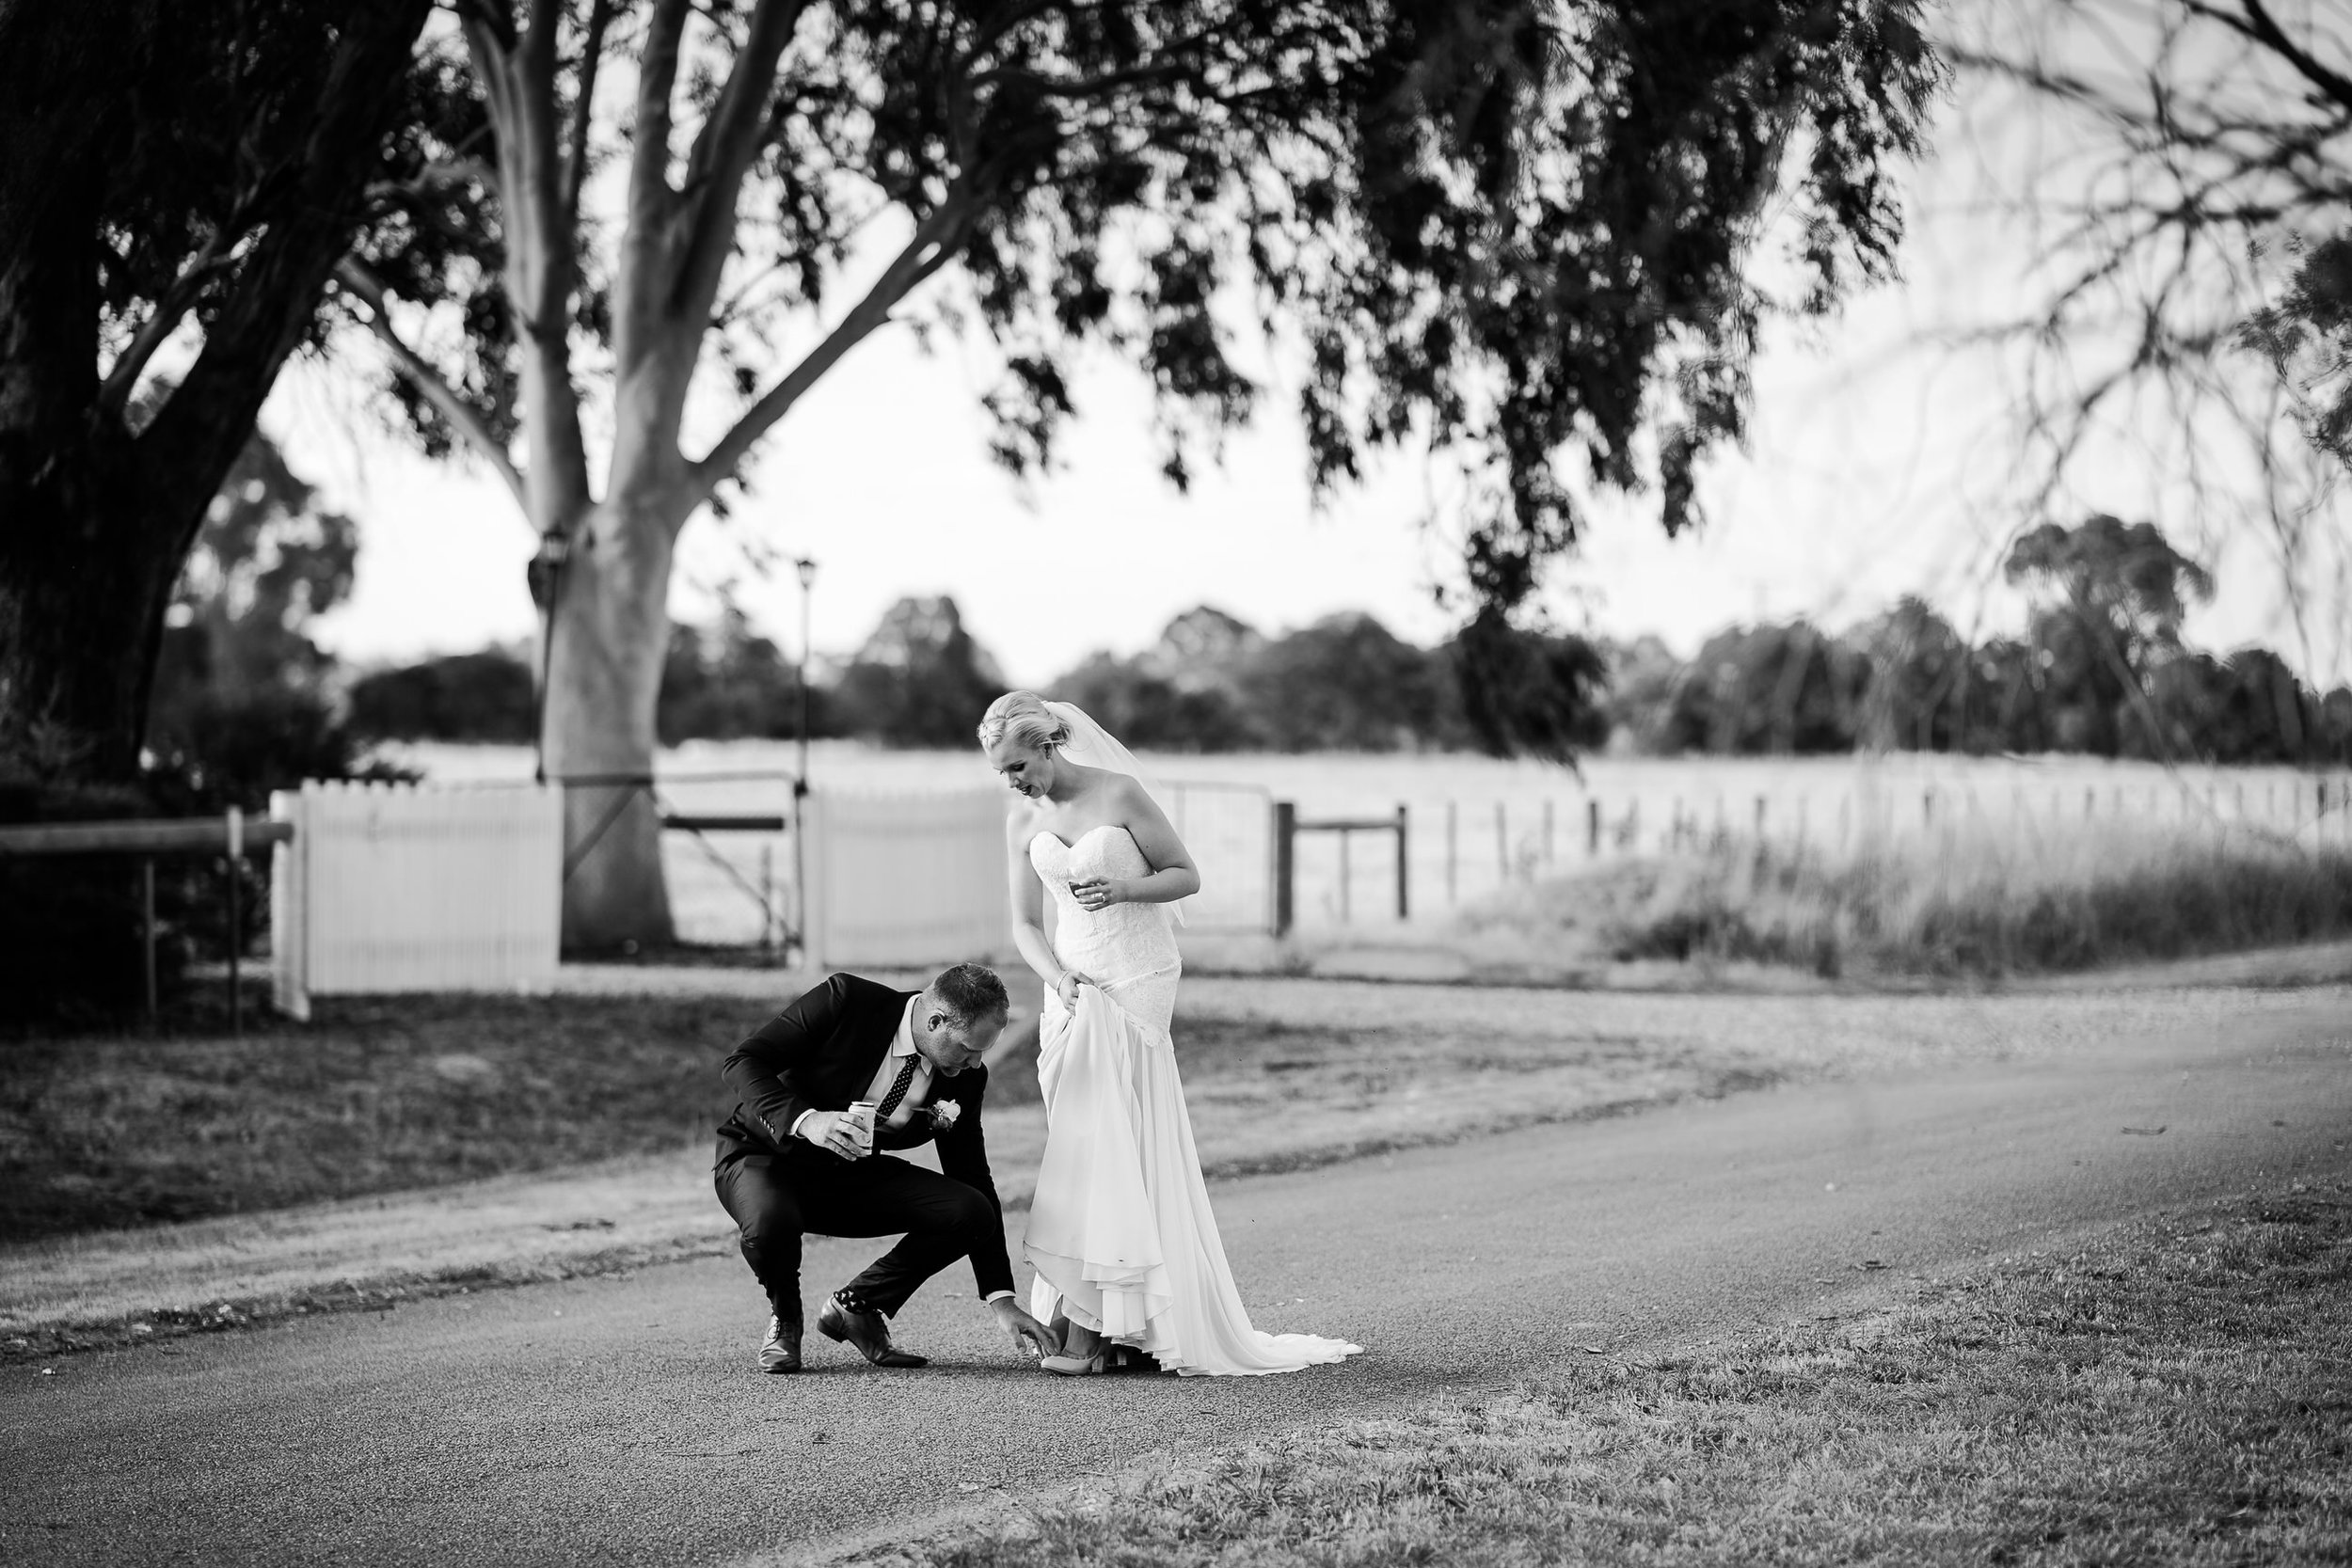 Justin_And_Jim_Photography_Byrchendale_Barn_Wedding69.JPG